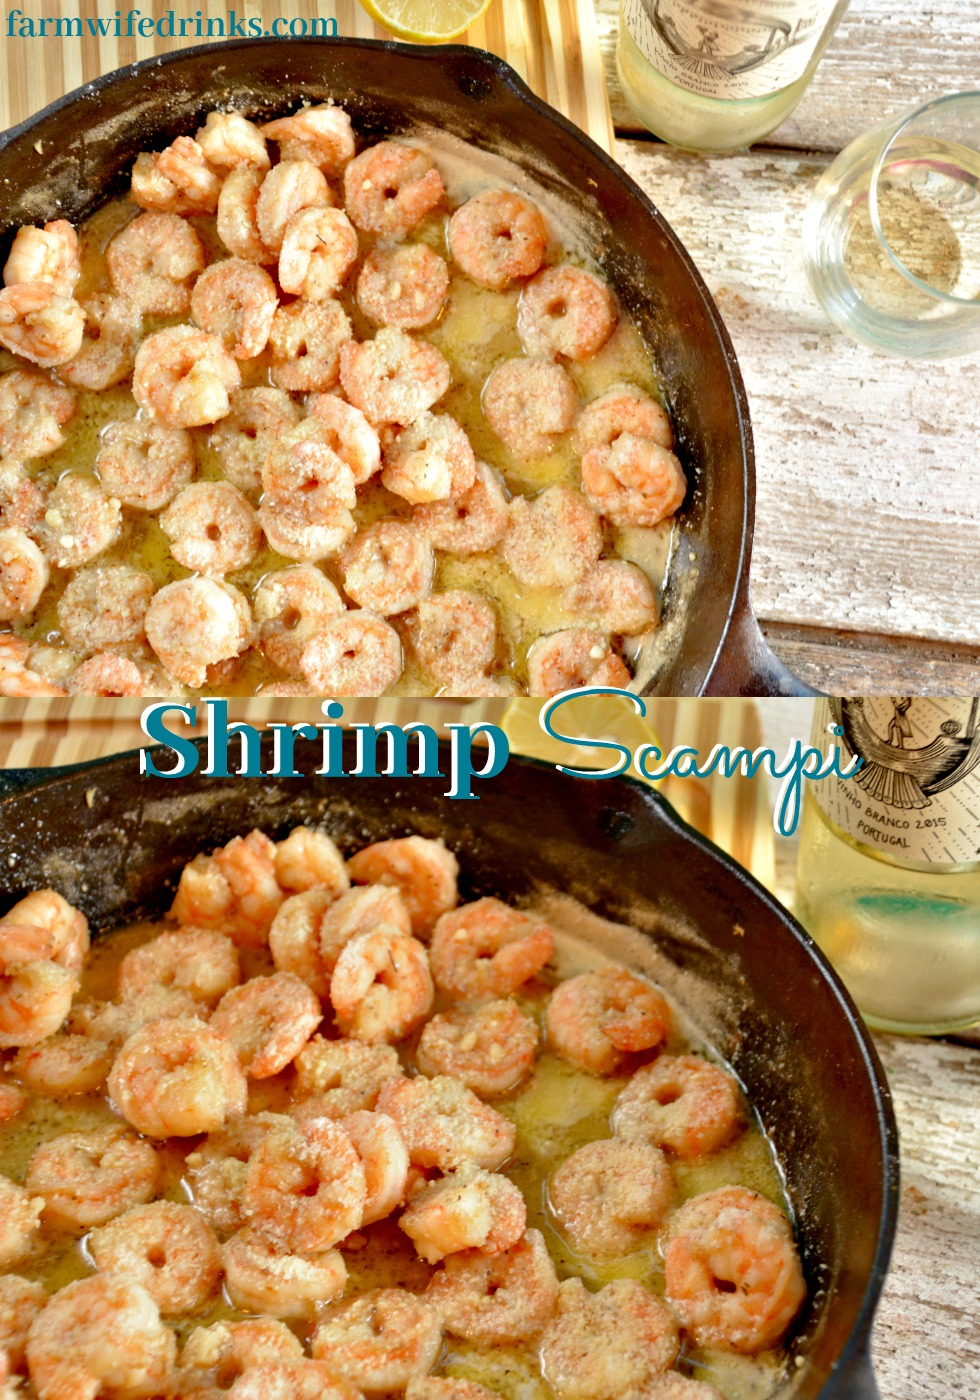 Shrimp Scampi with a white wine butter sauce is a 20 minute meal that can served with some pasta to be a hit busy weeknight meal.